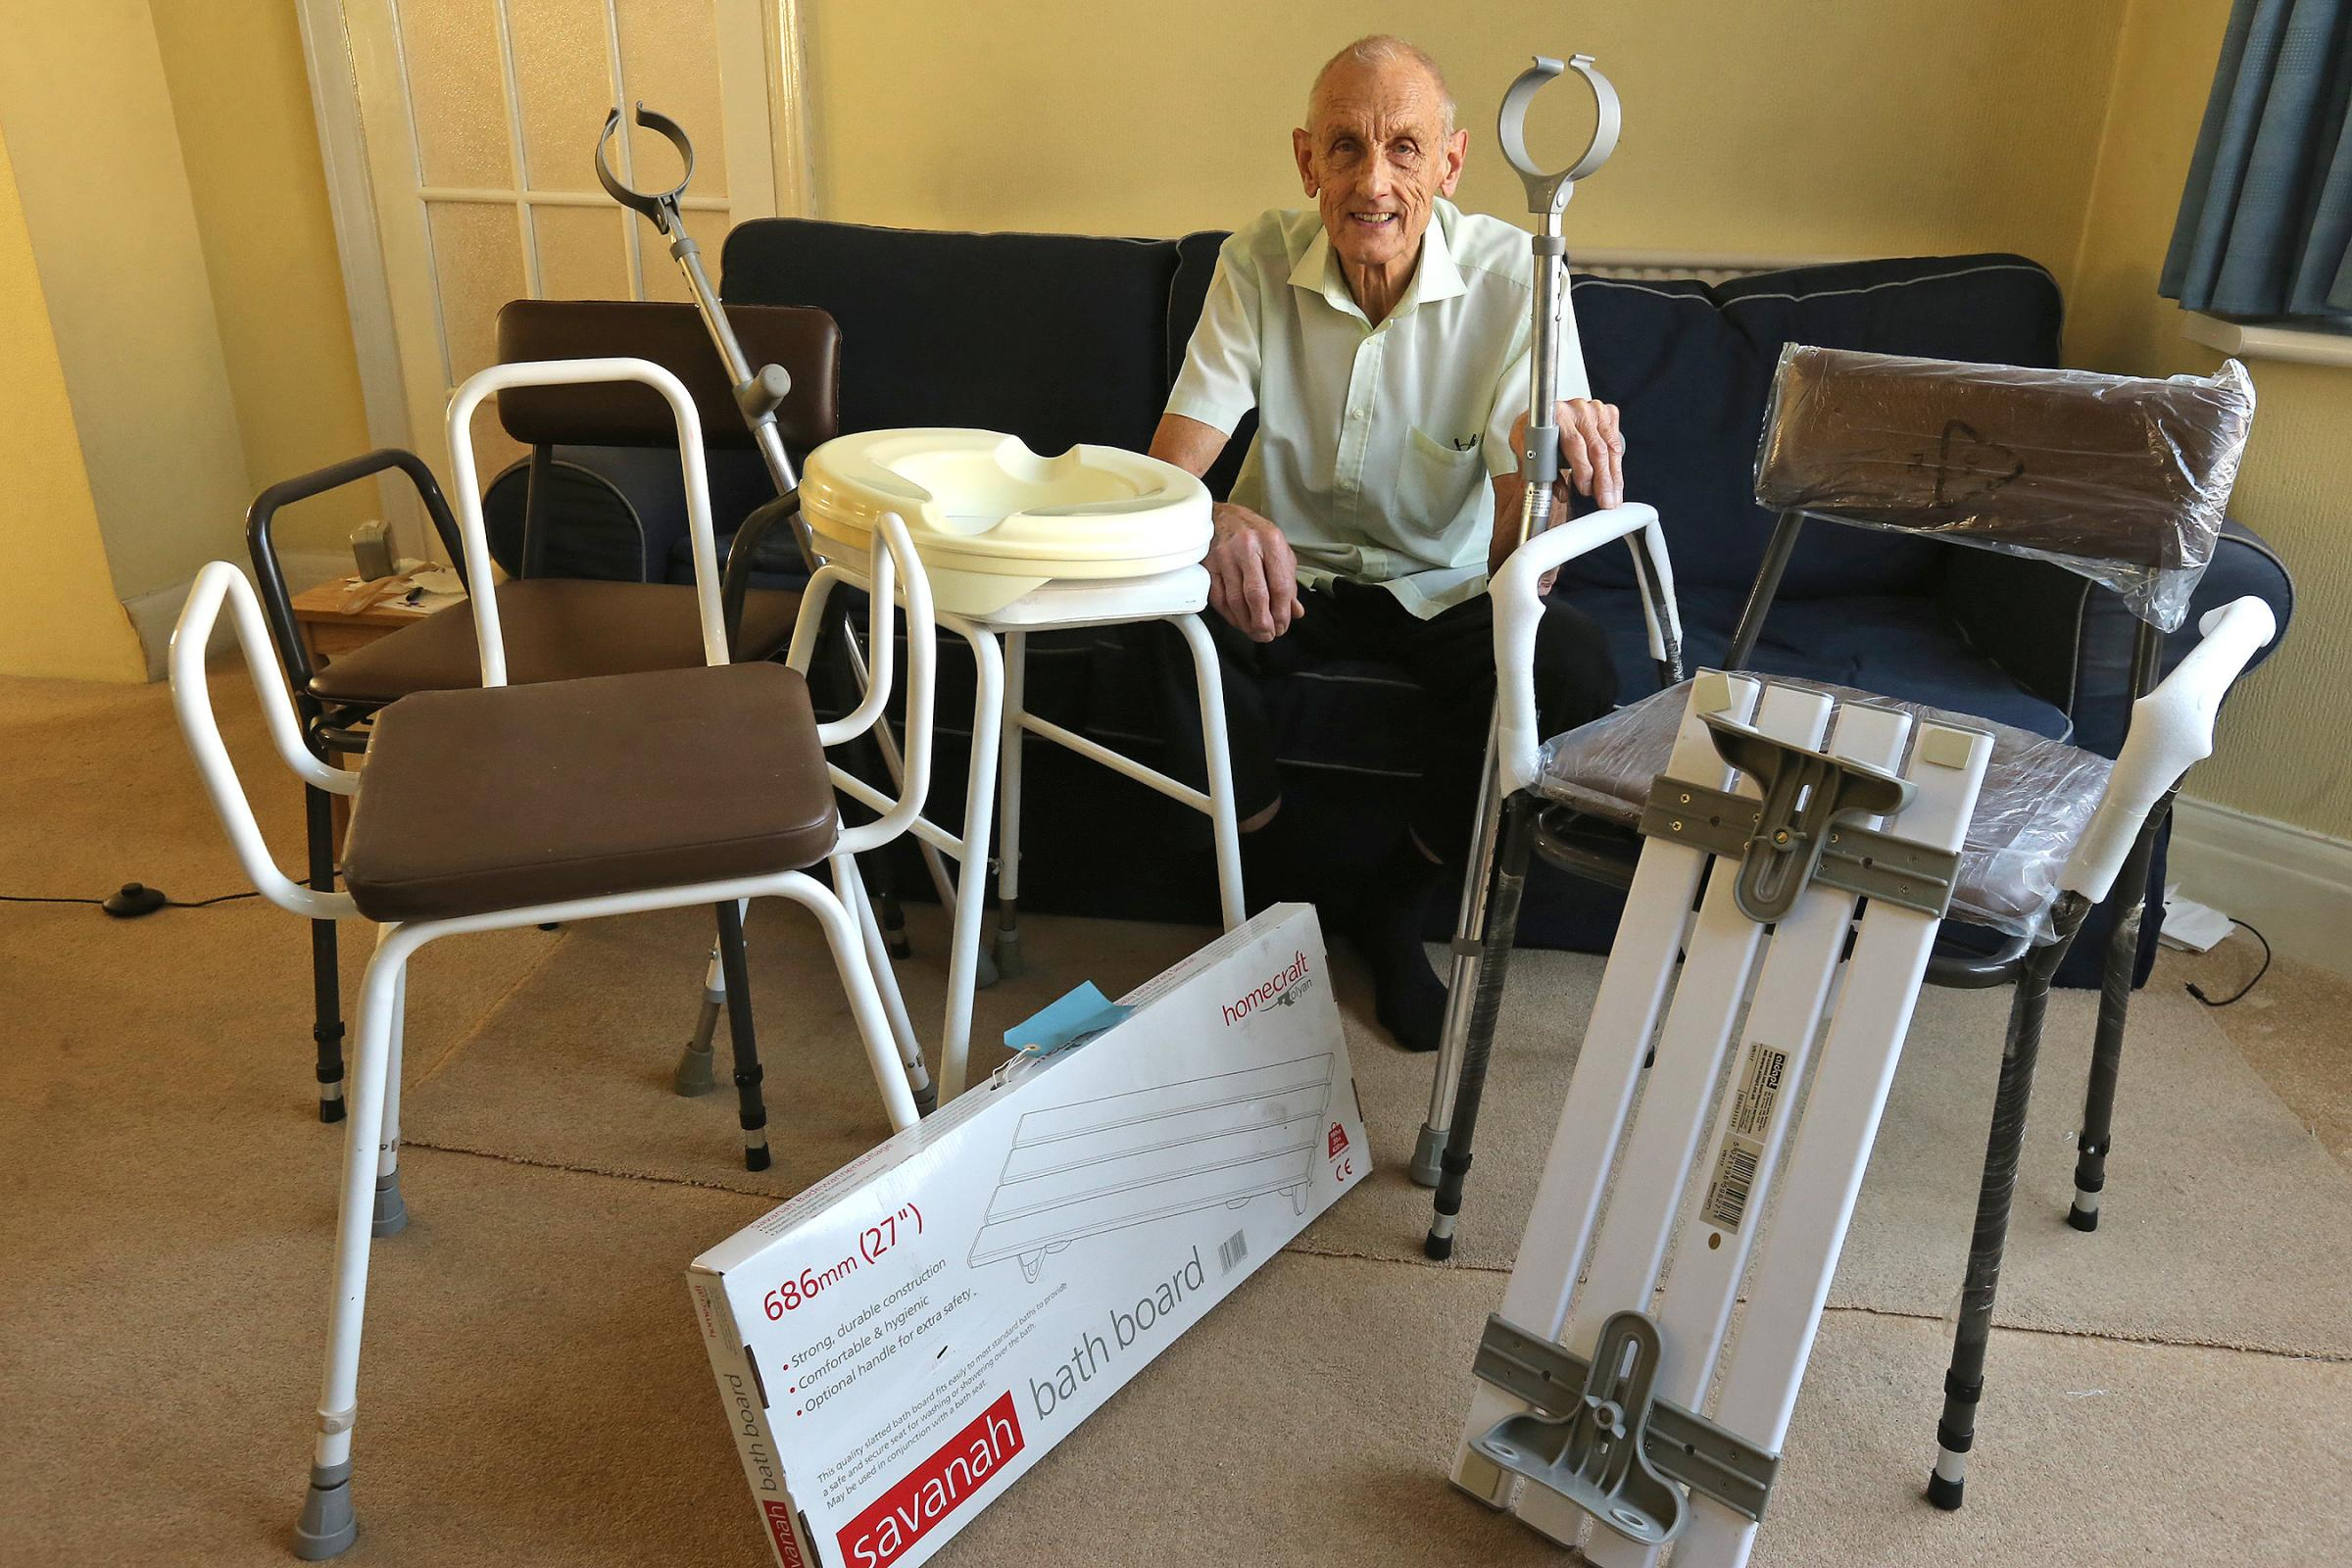 Frank Collins, 82, is finally getting rid of his unwanted mobility equipment that wife Rita, 80, stopped needing a year ago.